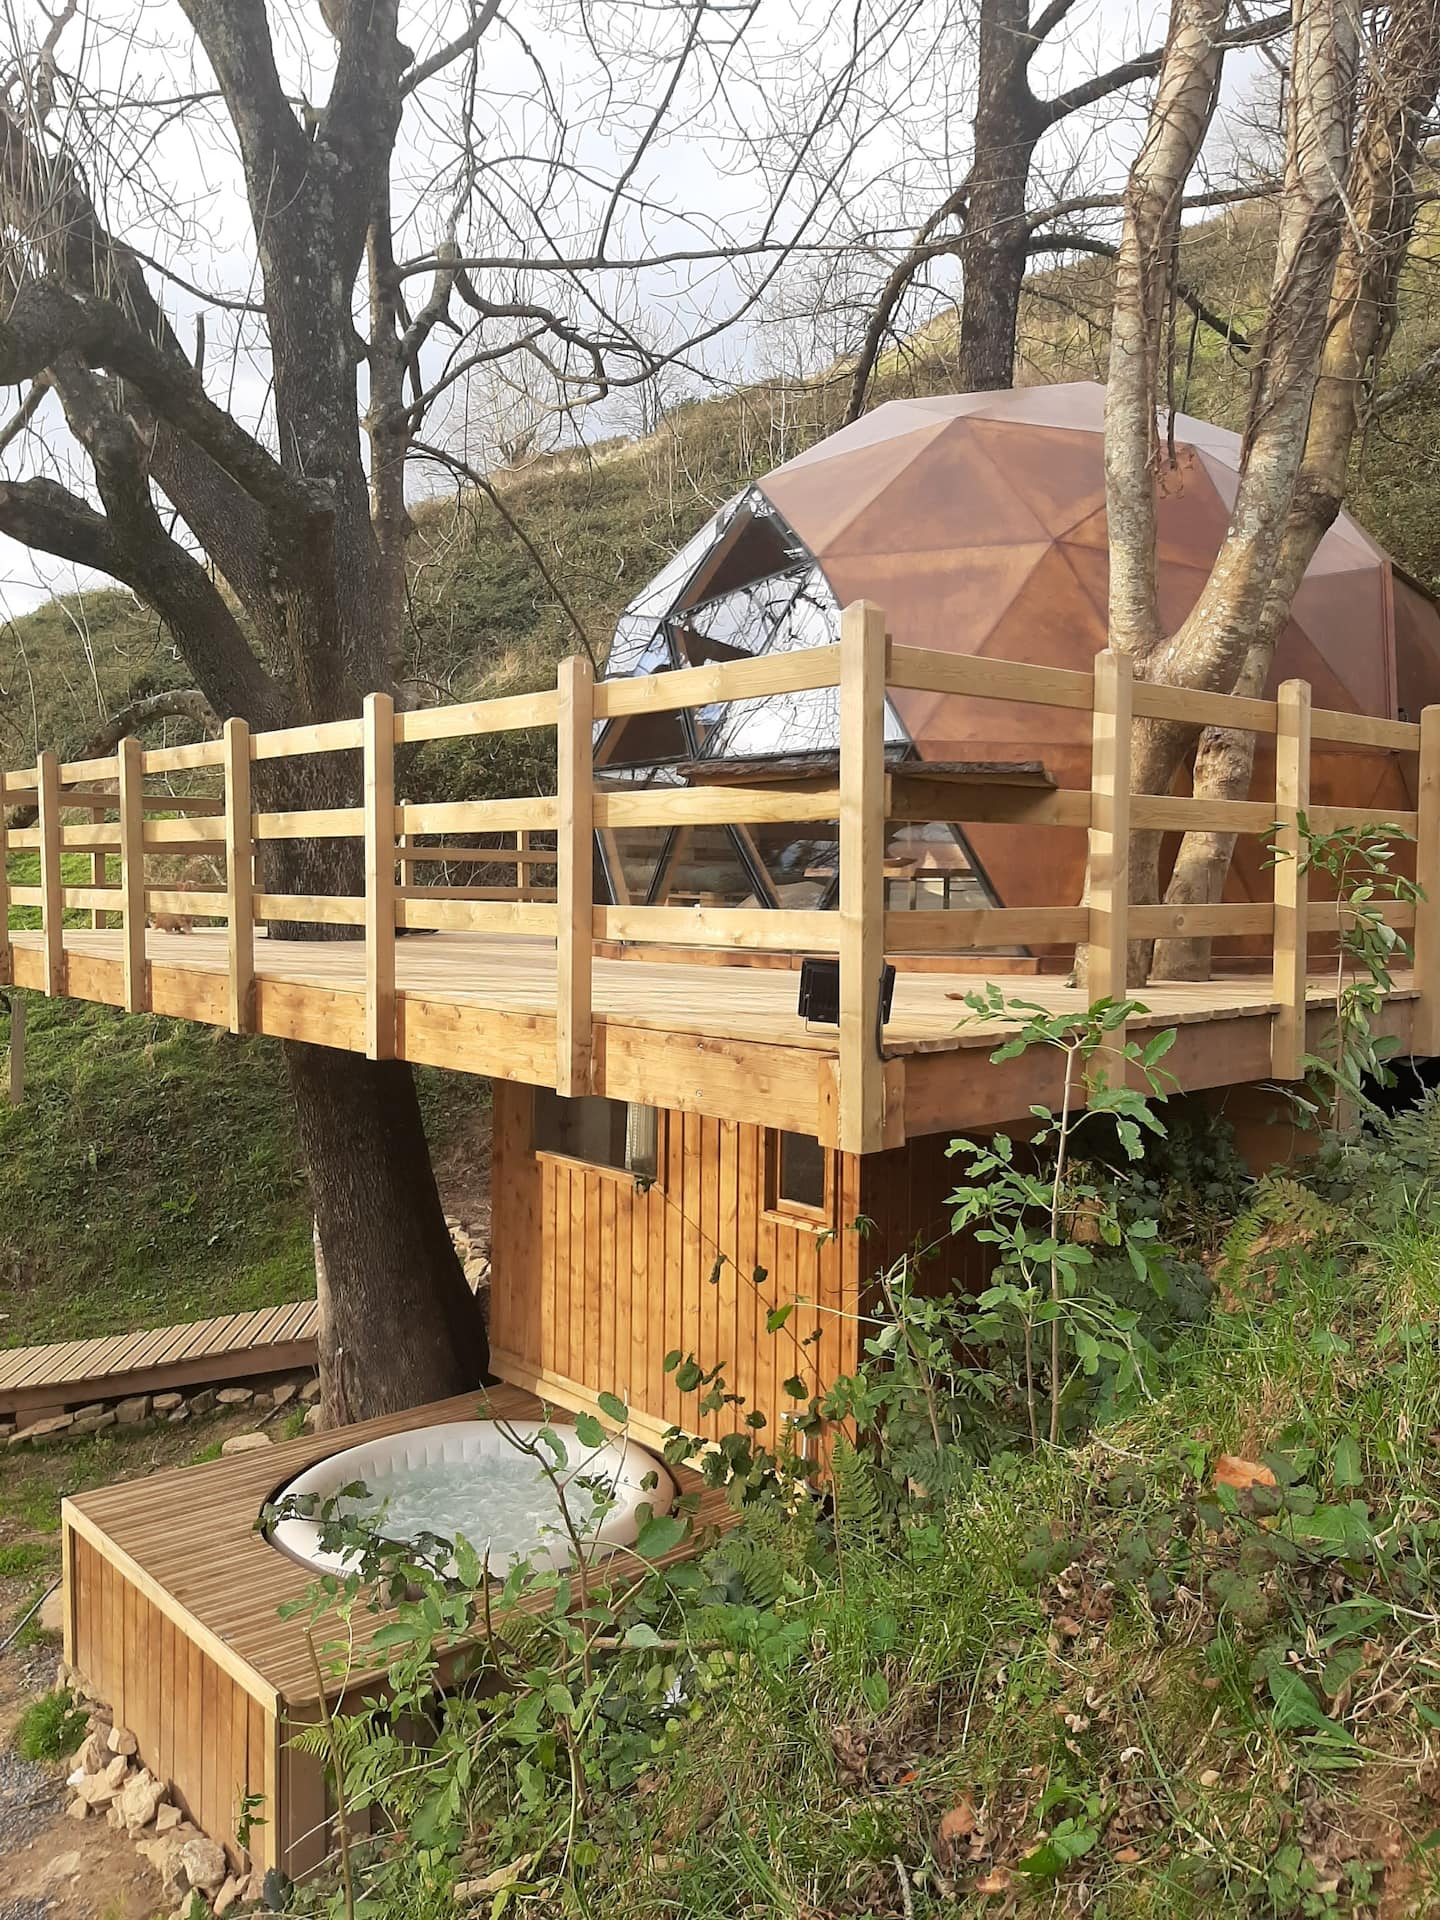 Treehouses in Spain Chulavista Dome with hot tub